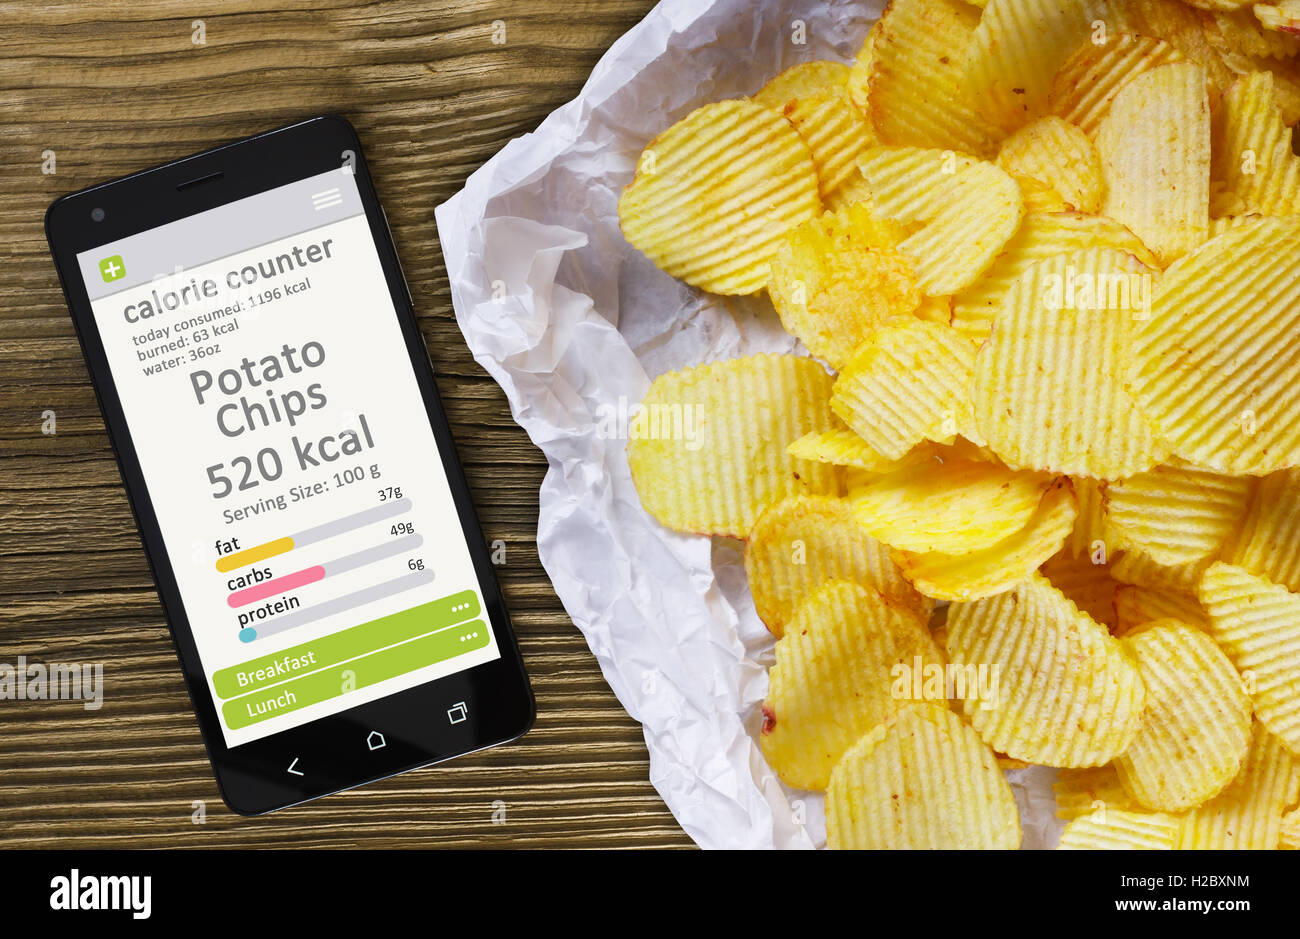 Calorie counter concept concept - mobile phone with calorie counter app on the screen and potato chips. Wooden table - Stock Image